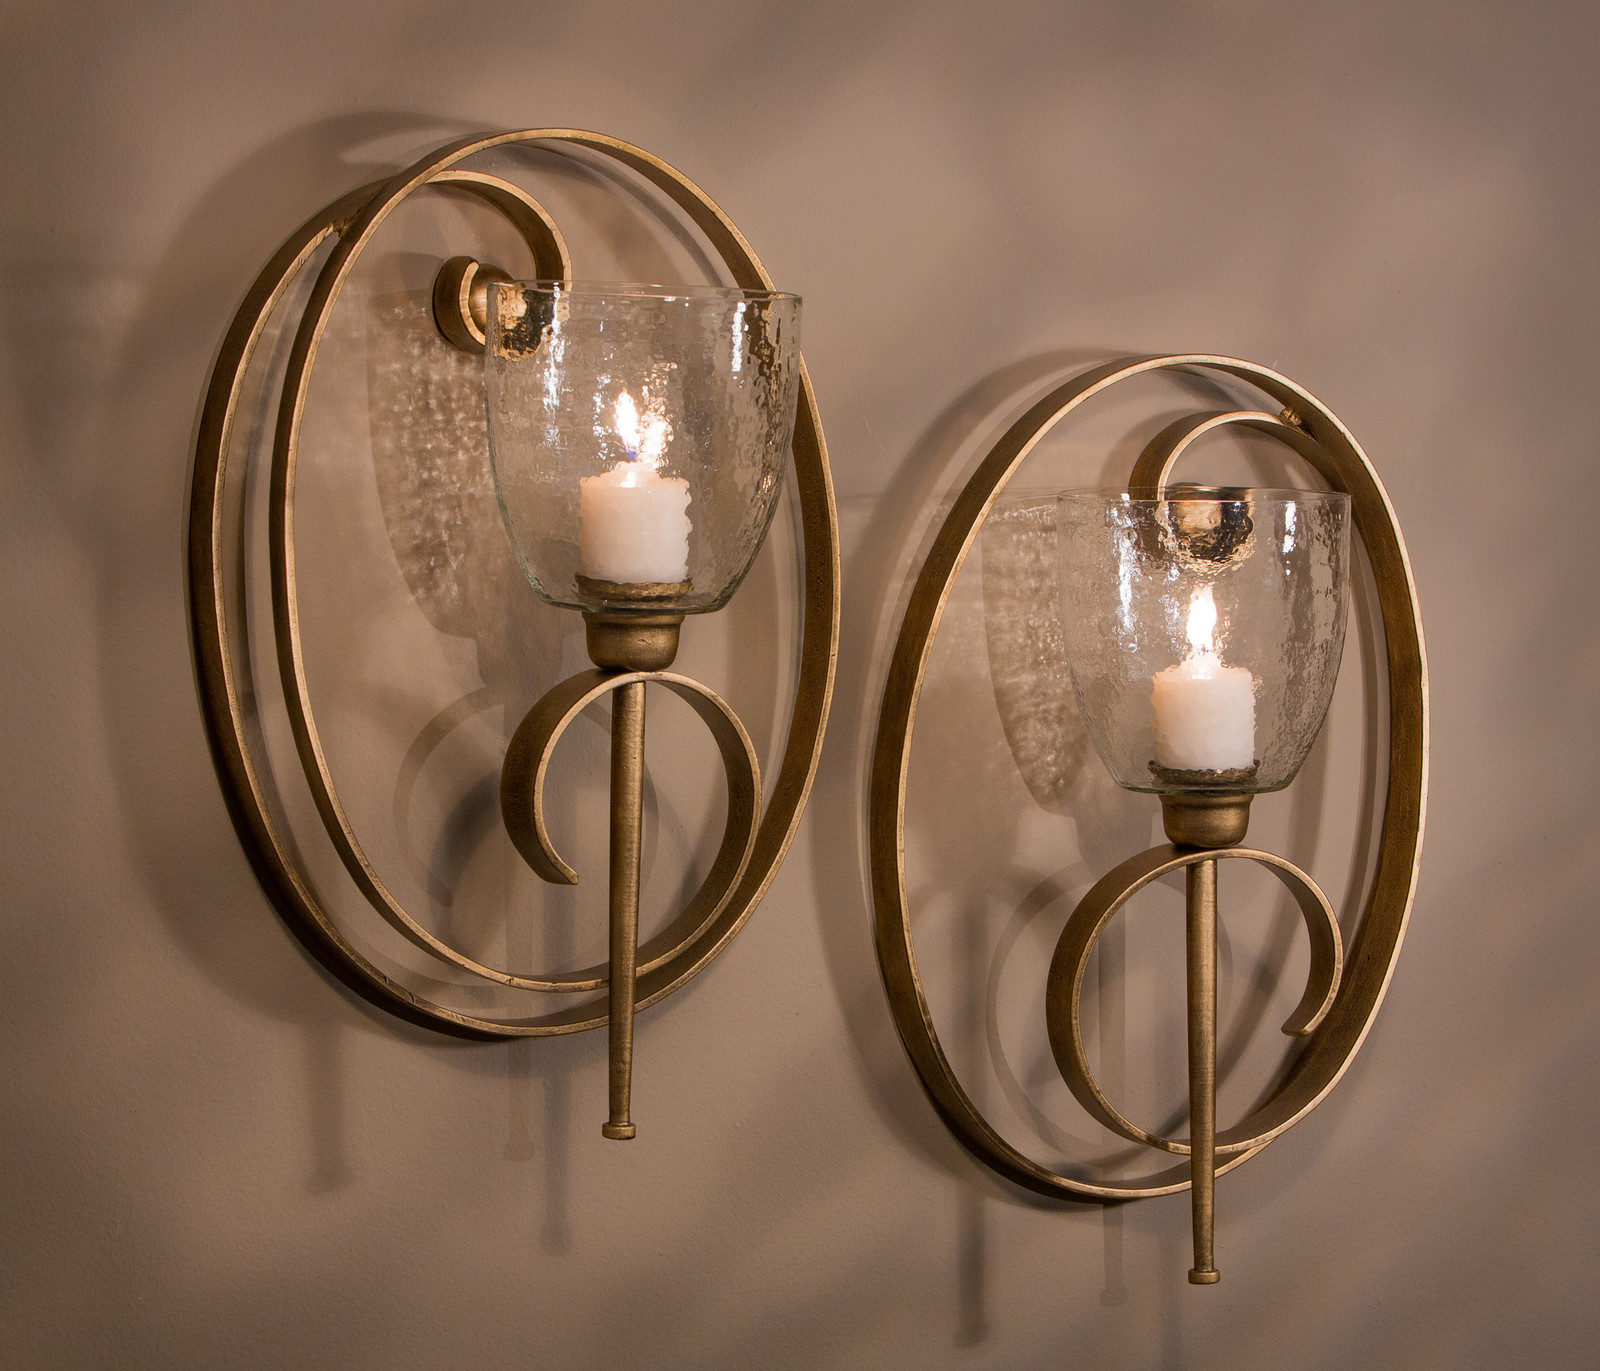 Set of 2 Antique Gold Iron Oval Scroll Wall Candle Sconces ...